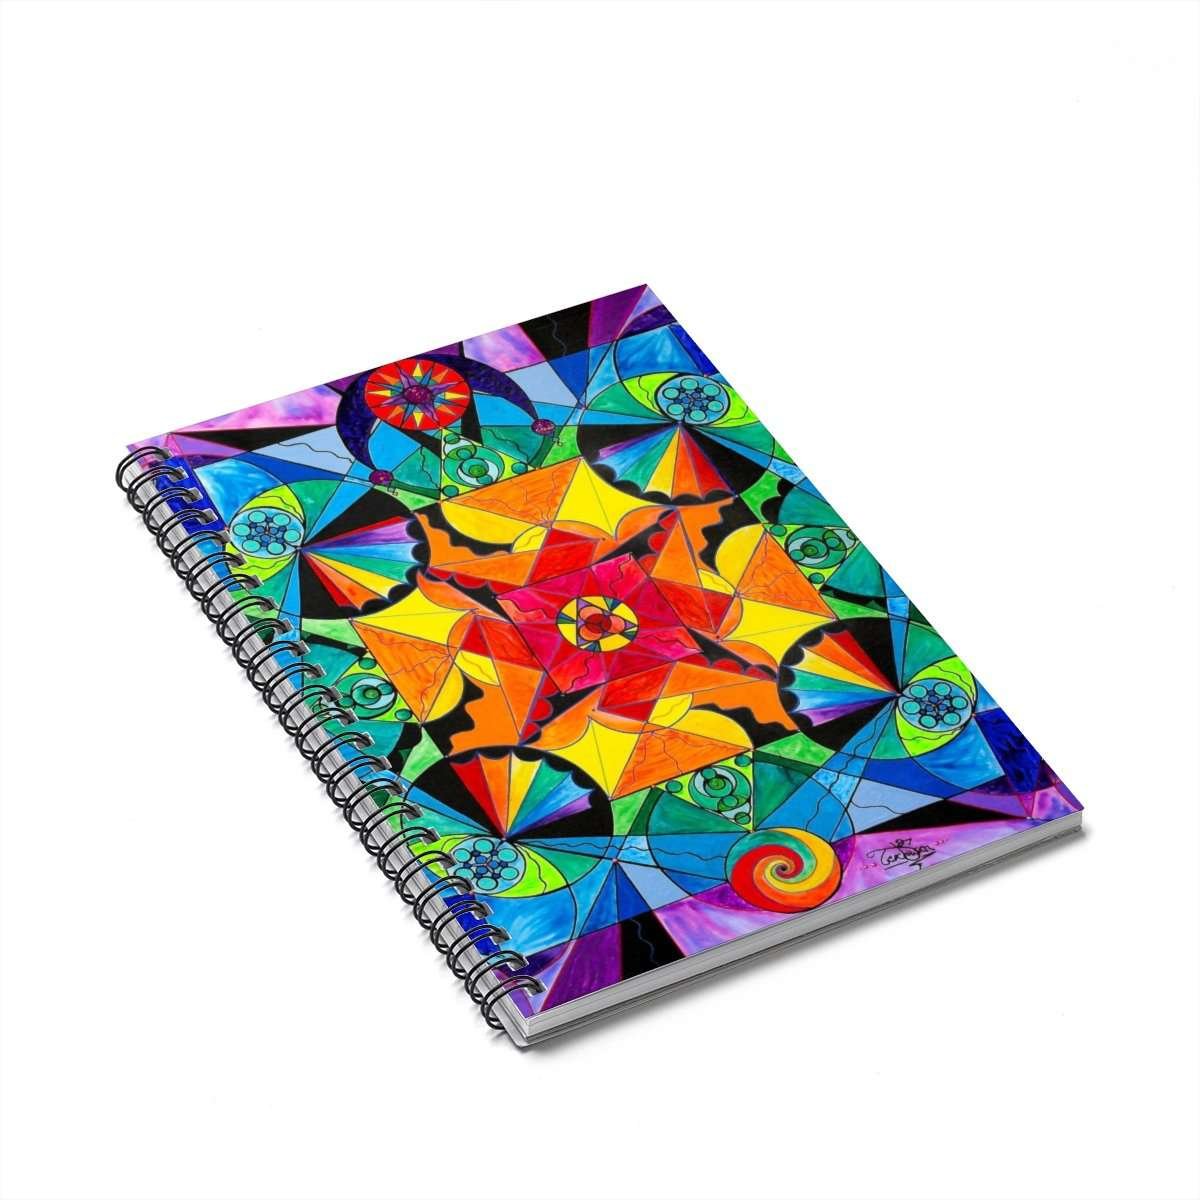 The Way - Arcturian Blue Ray Grid - Spiral Notebook